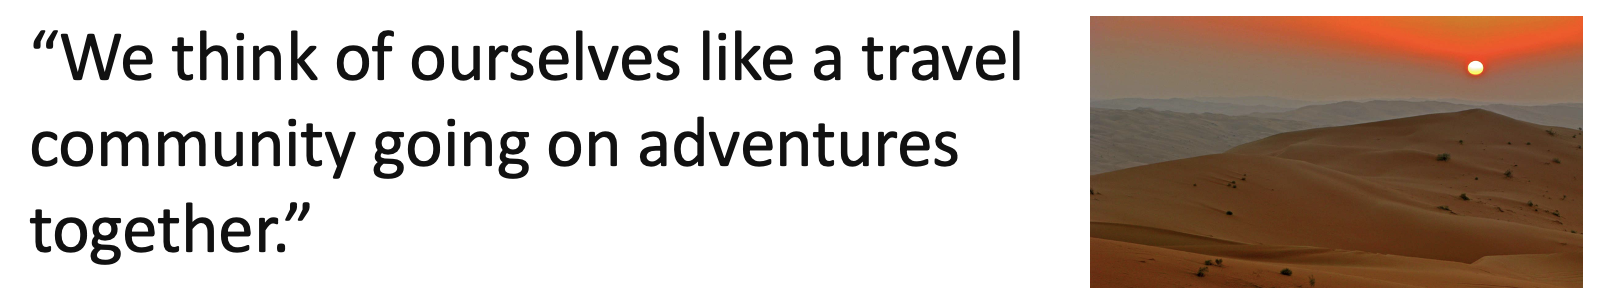 Travel quote and image of a desert